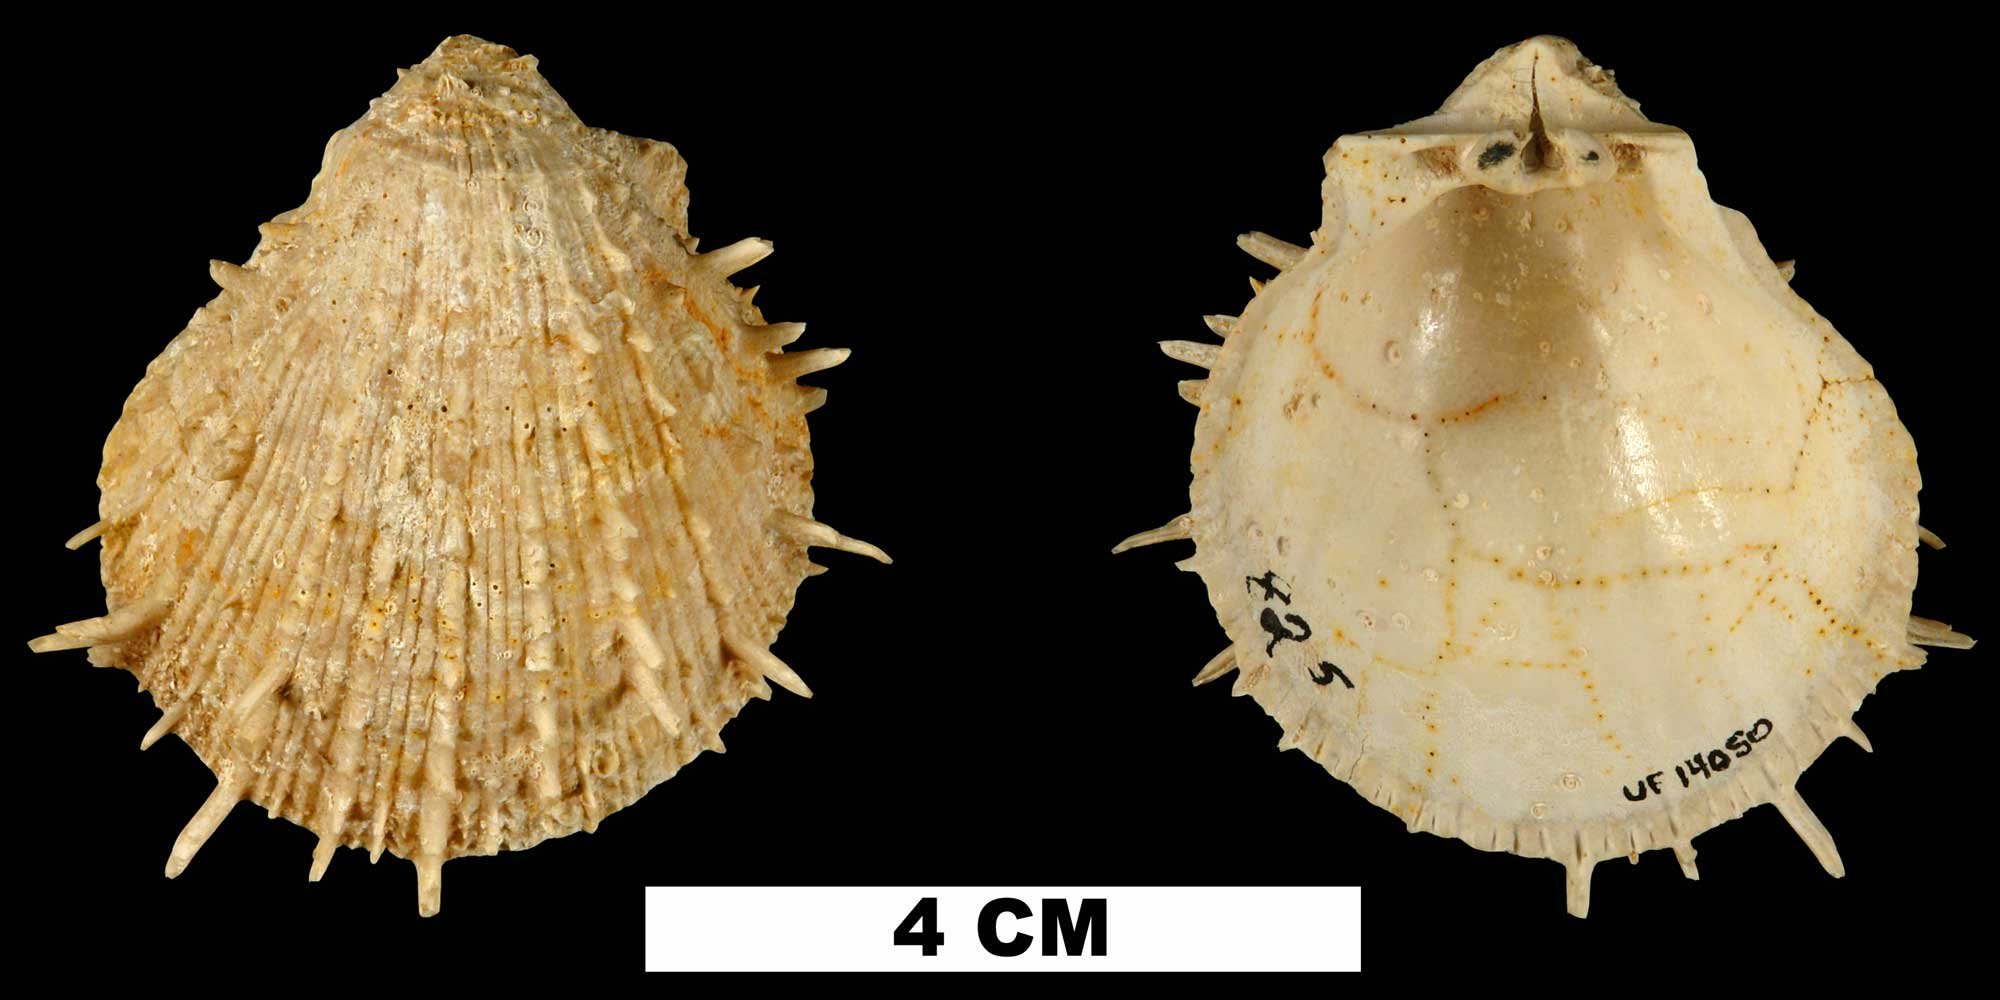 Photographs of Spondylus chipolanus.